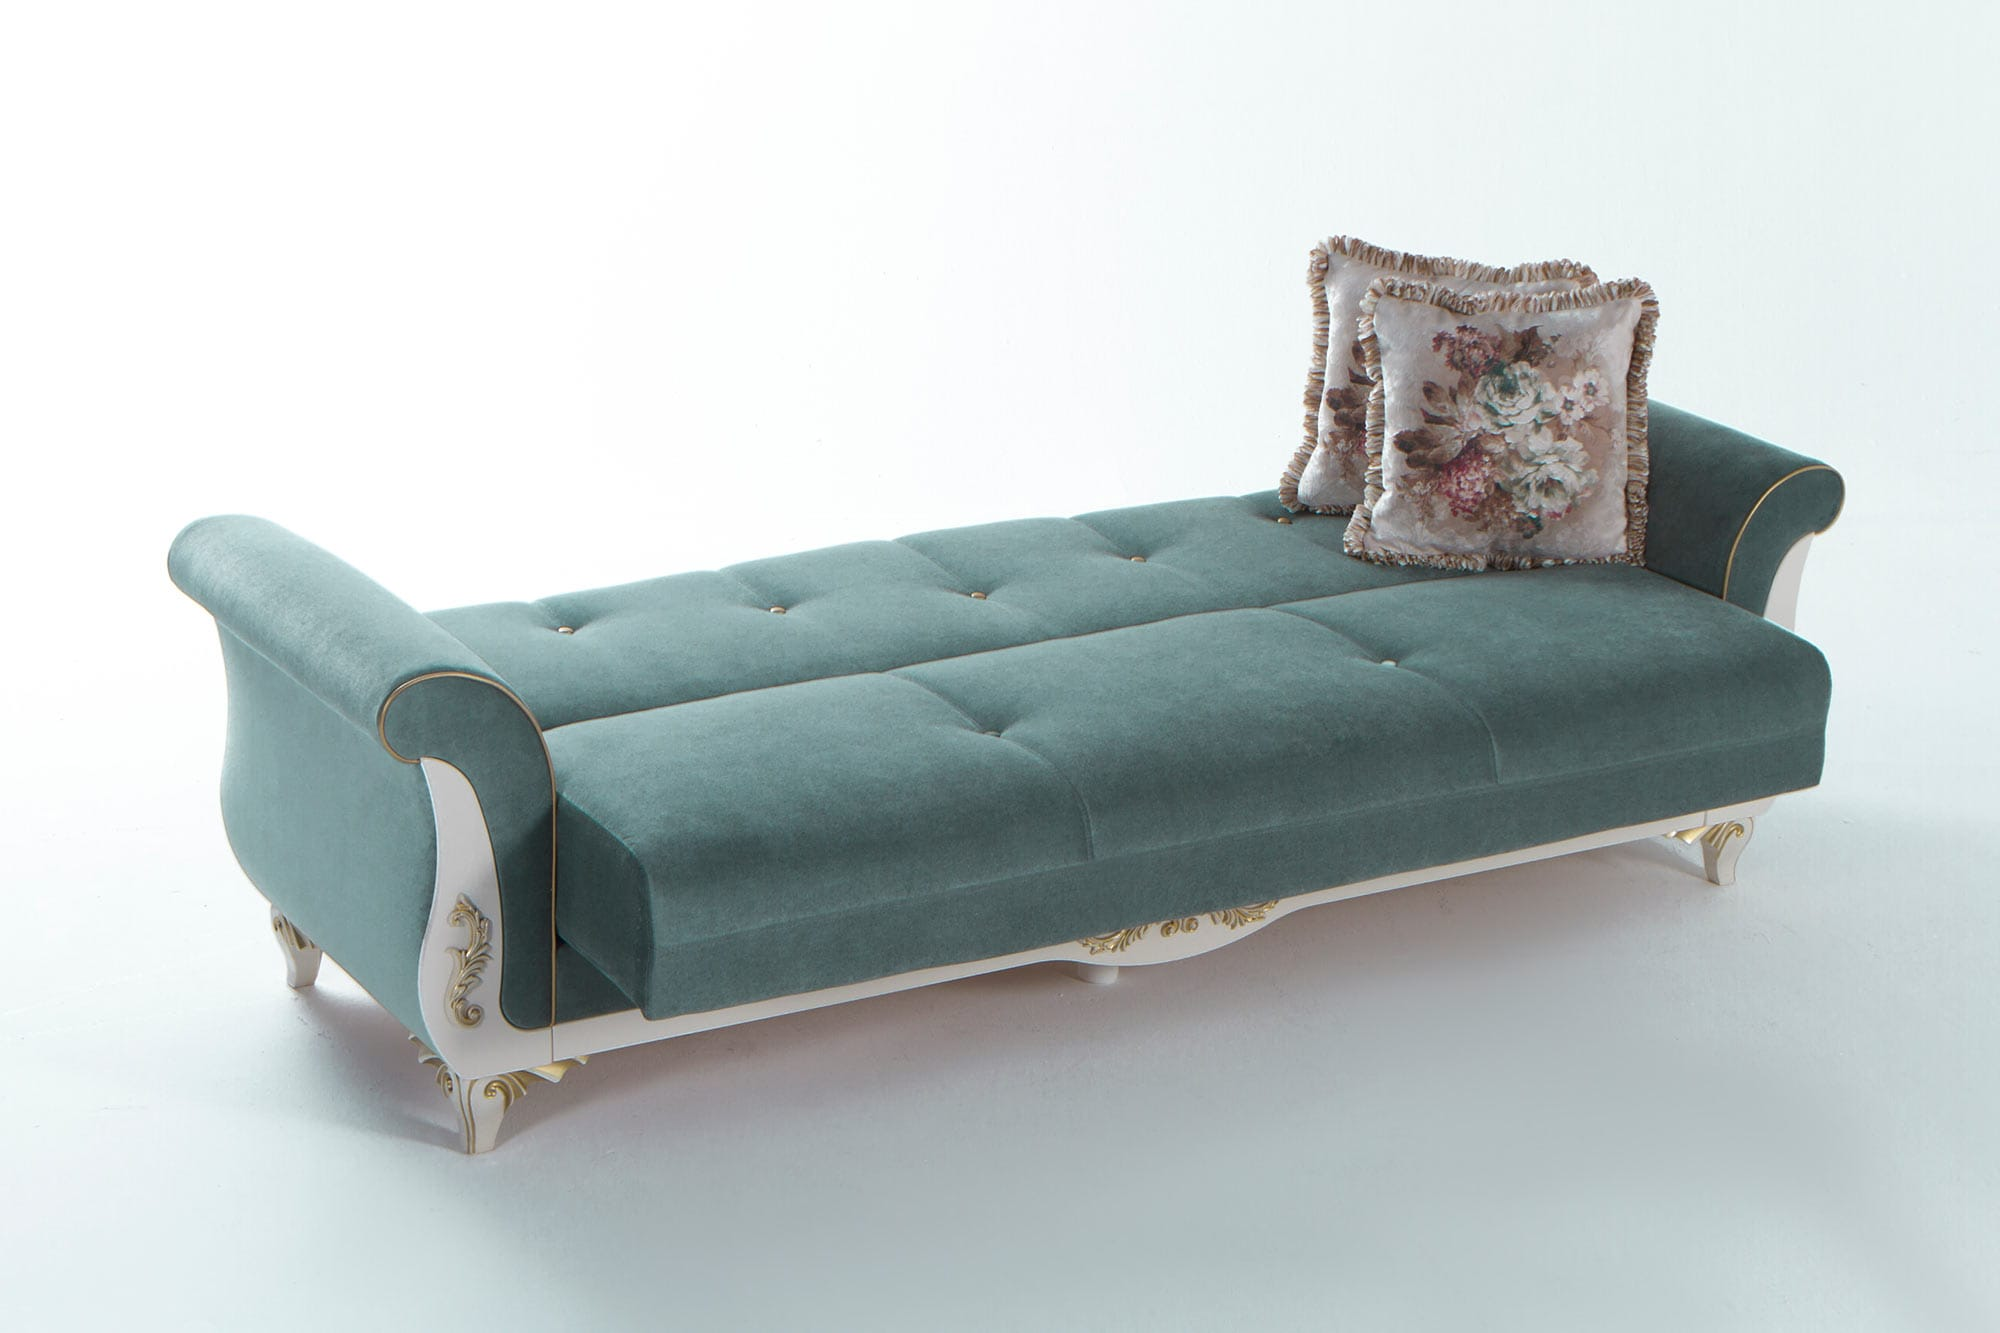 index mulberry sofa bed ikea table hack astoria caprice seafoam green convertible by